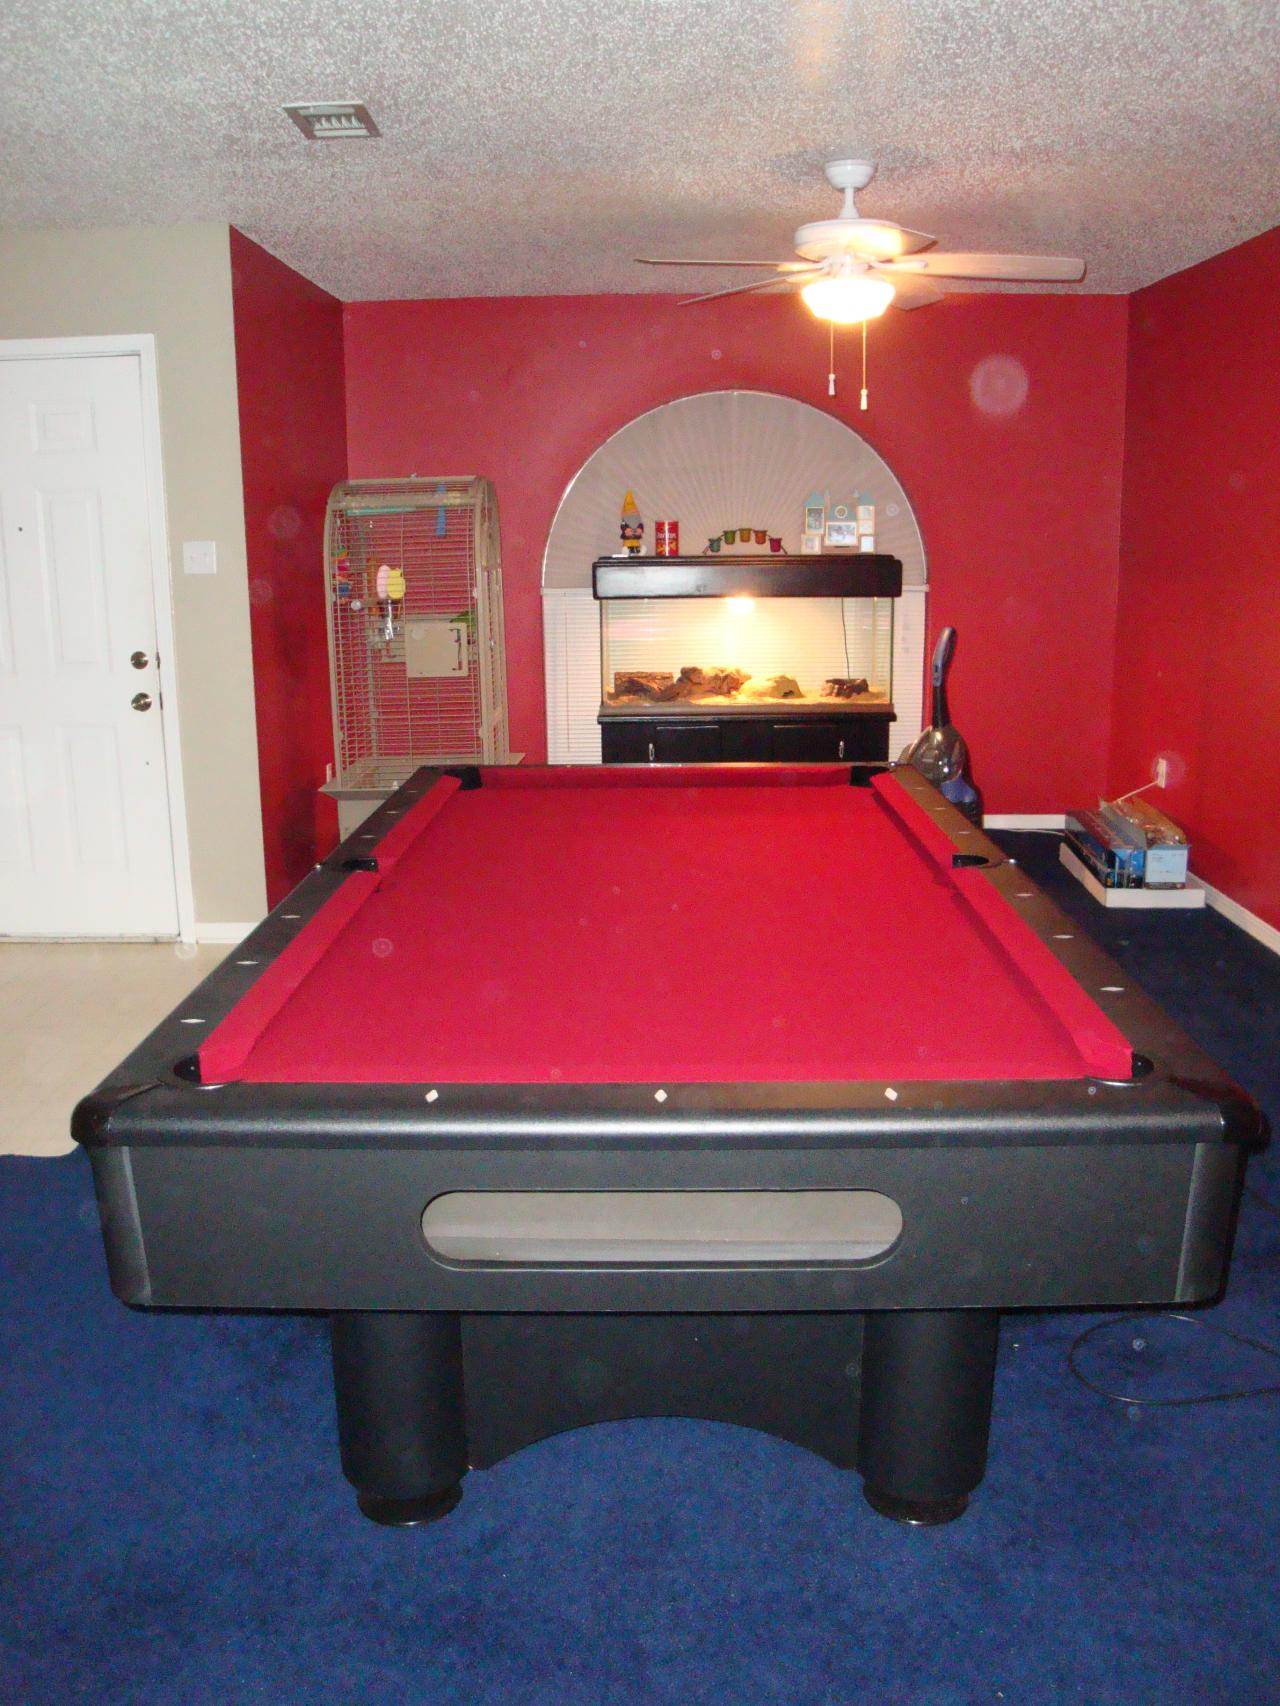 Legacy Billiards Pool Table Photos Table And Pillow WeirdmongerCom - Legacy billiards table